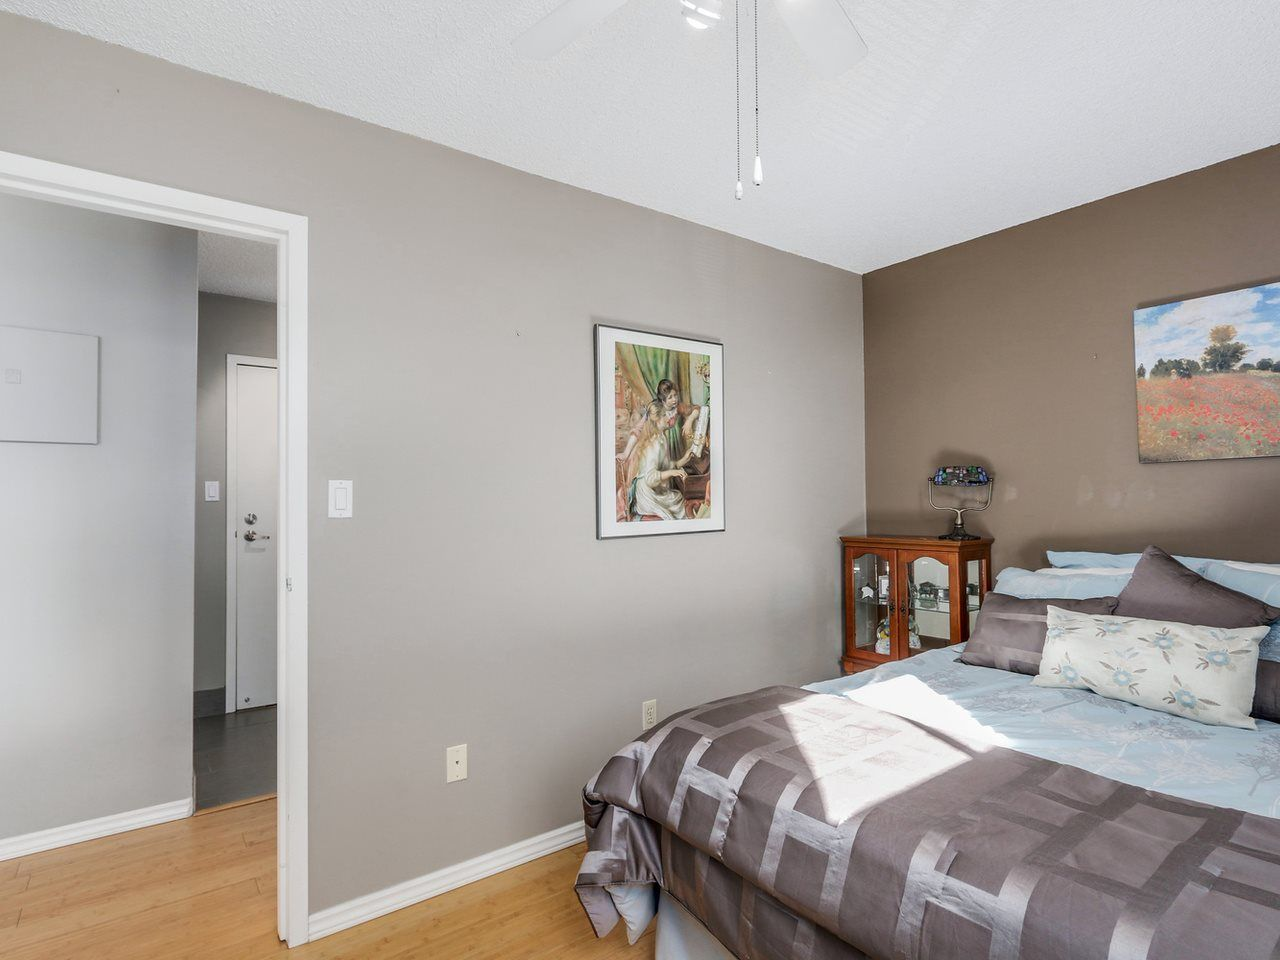 Photo 13: Photos: P3 2885 SPRUCE Street in Vancouver: Fairview VW Condo for sale (Vancouver West)  : MLS®# R2052789